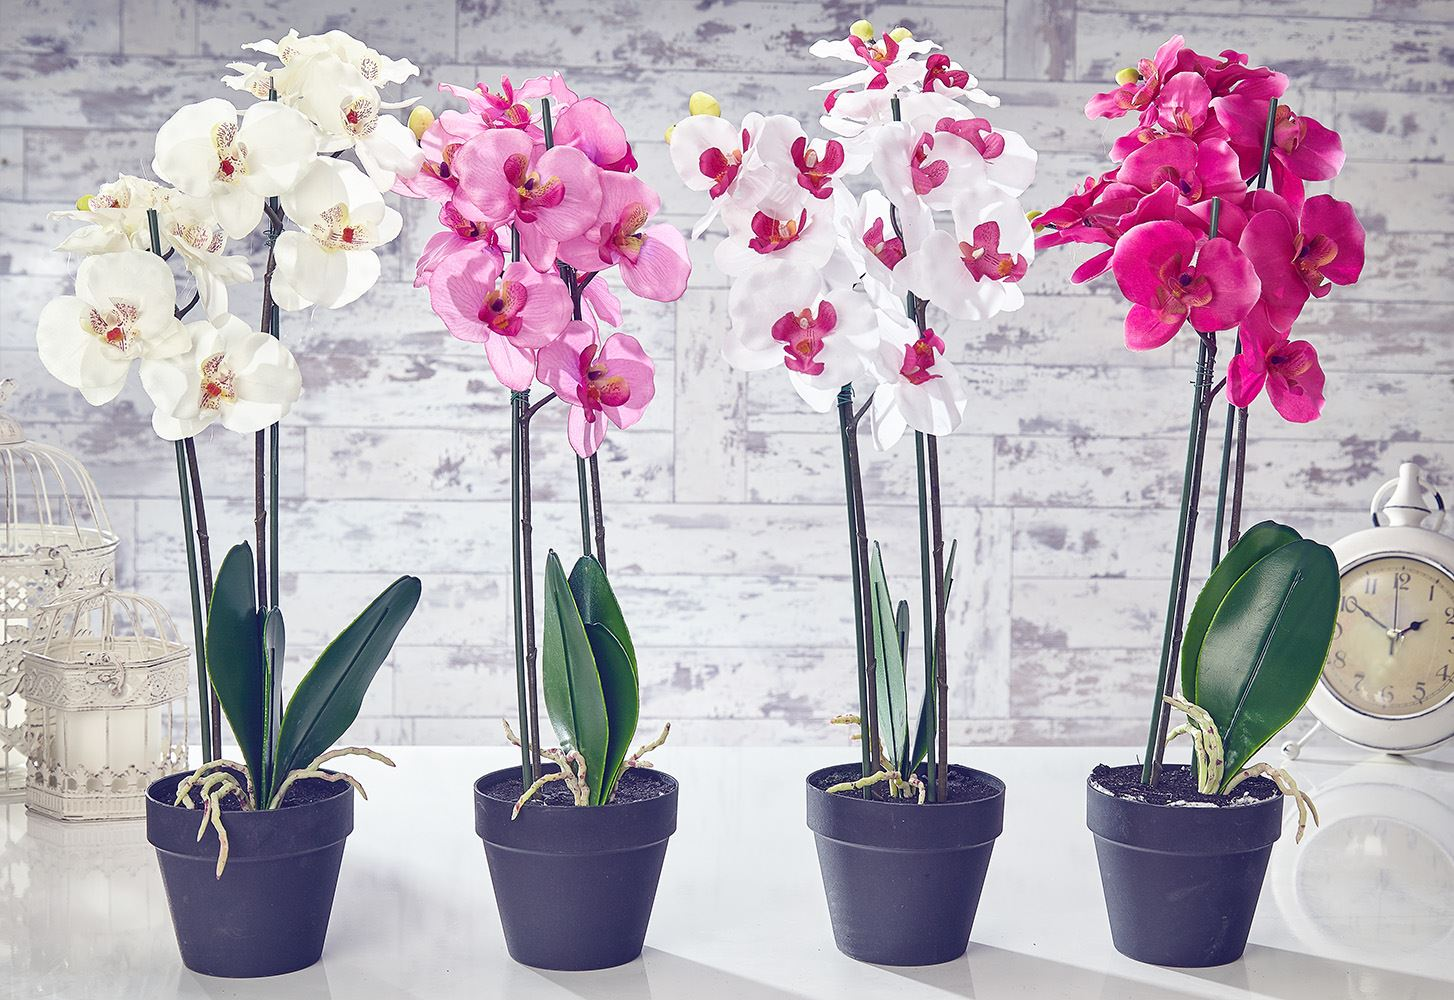 Artificial orchid flowers plants in pot home decor garden for Using plants in home decor